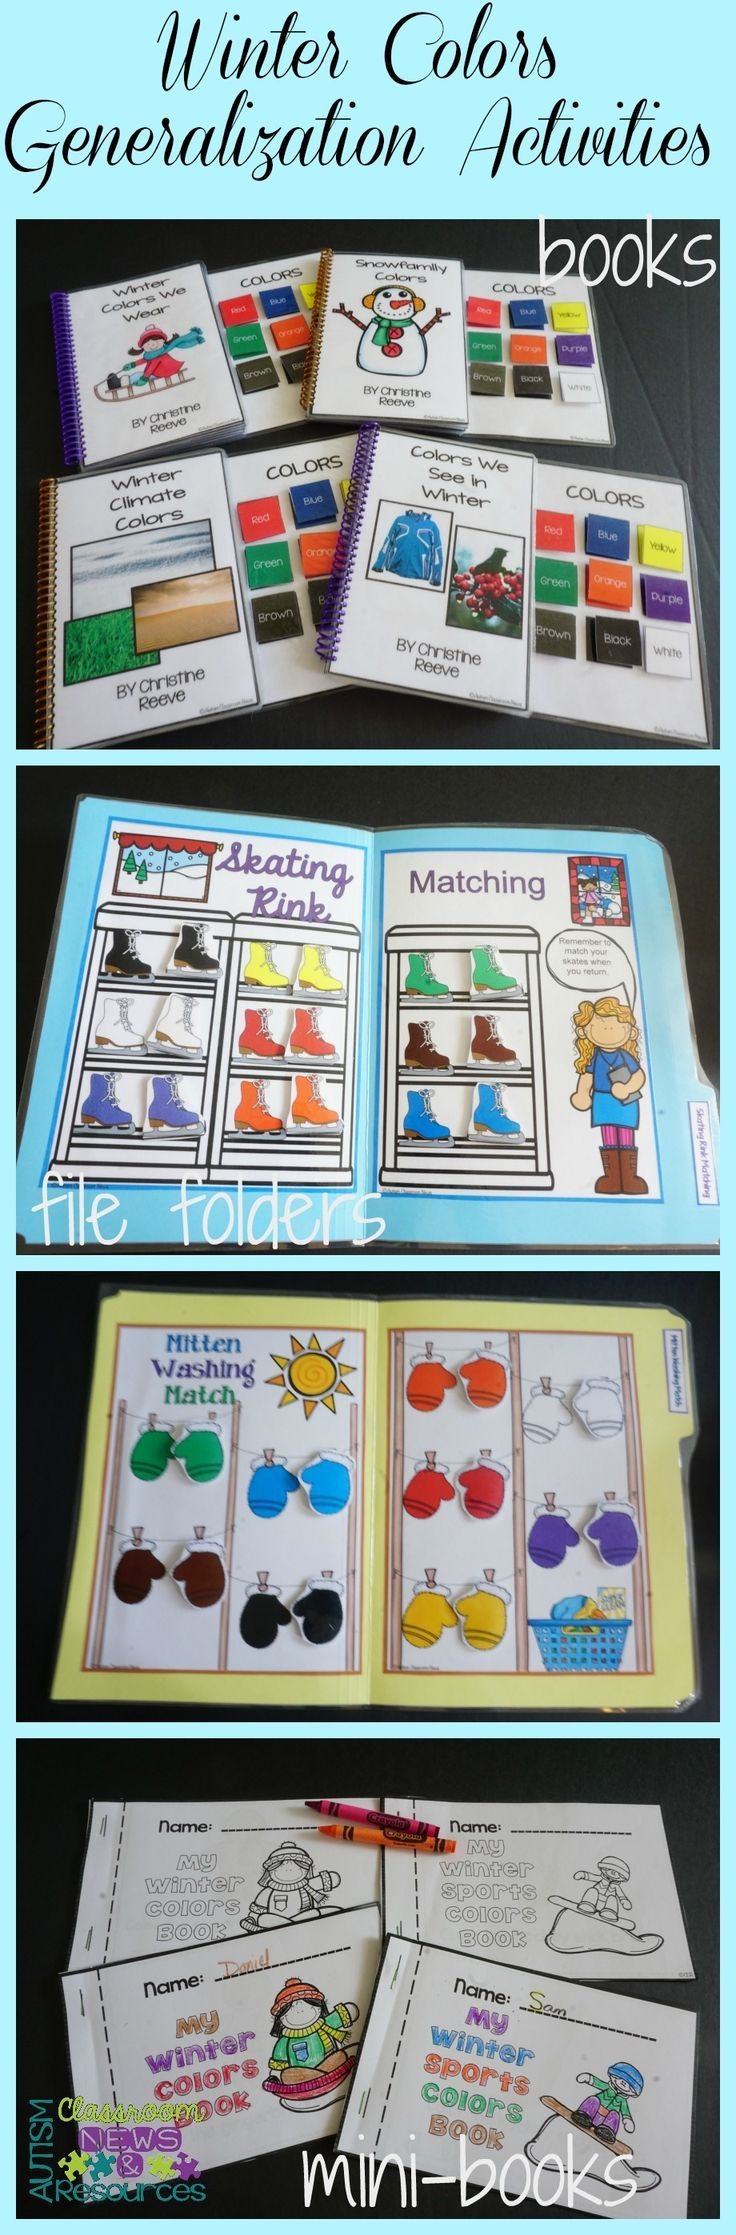 This huge set includes interactive books, file folder matching, mini color books, find the color sheets, and cookie sheet activities all designed to practice 9 colors.  These area great for discrete trial programs for children with autism and early childhood. $